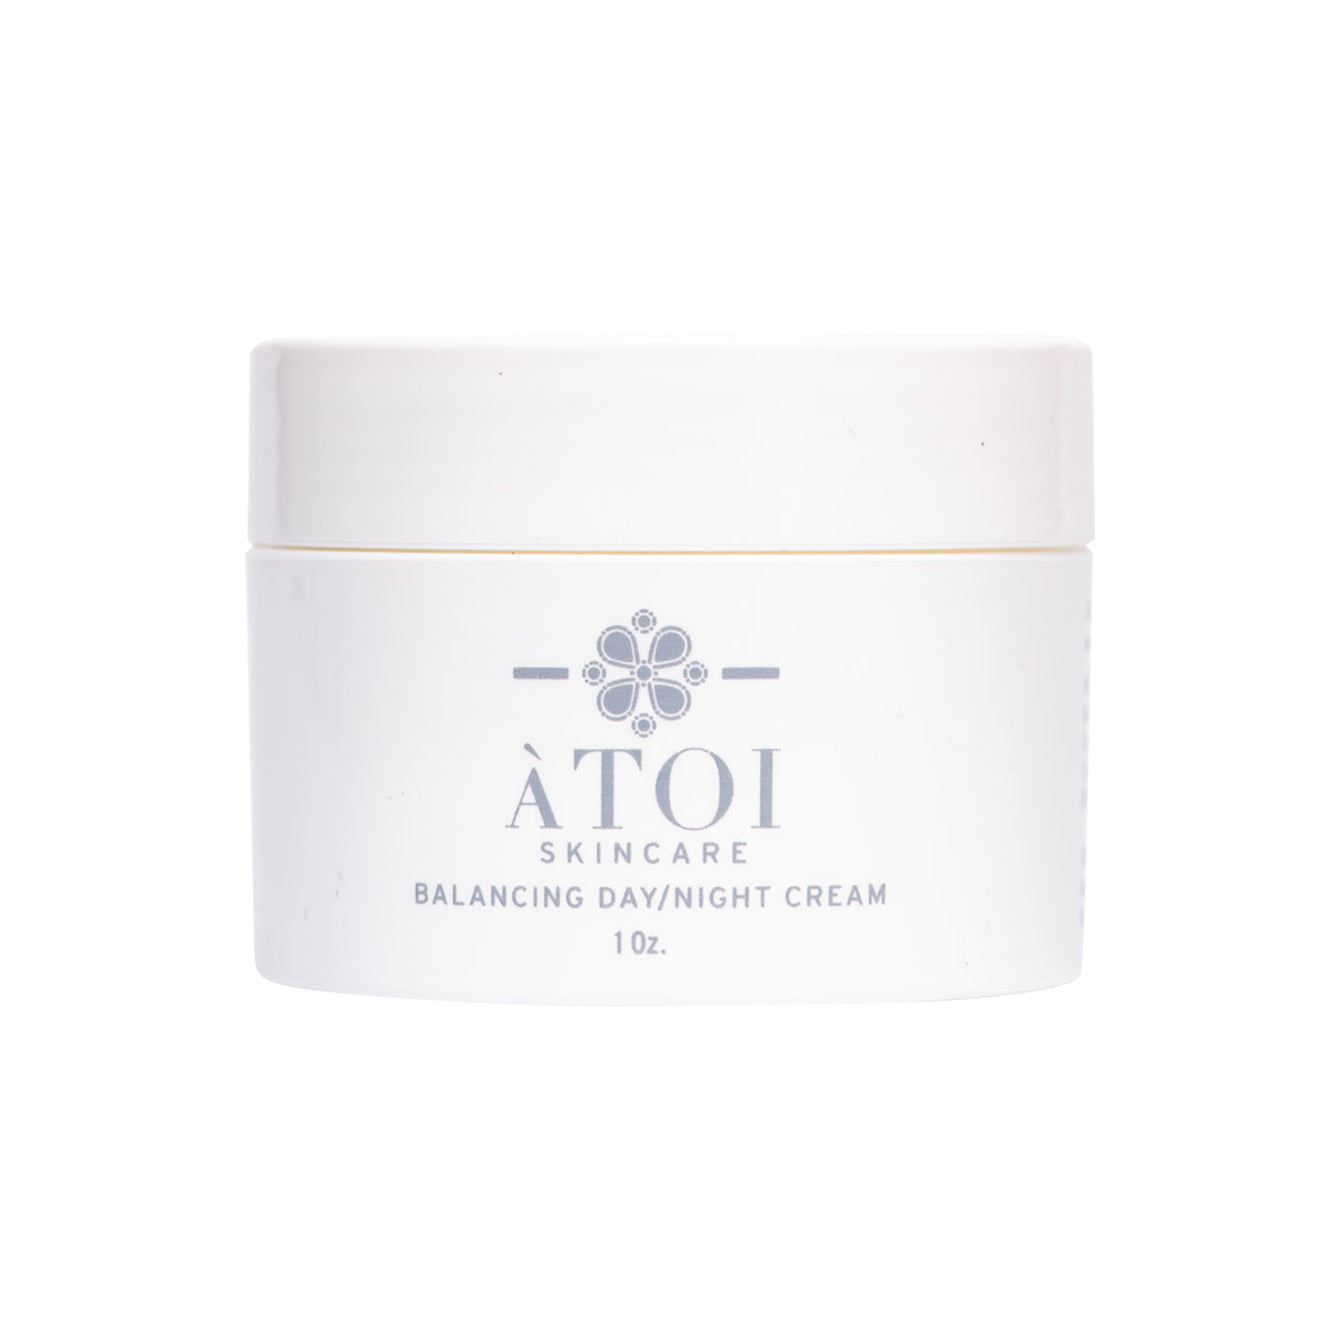 Balancing Day/Night Cream (1 oz.)